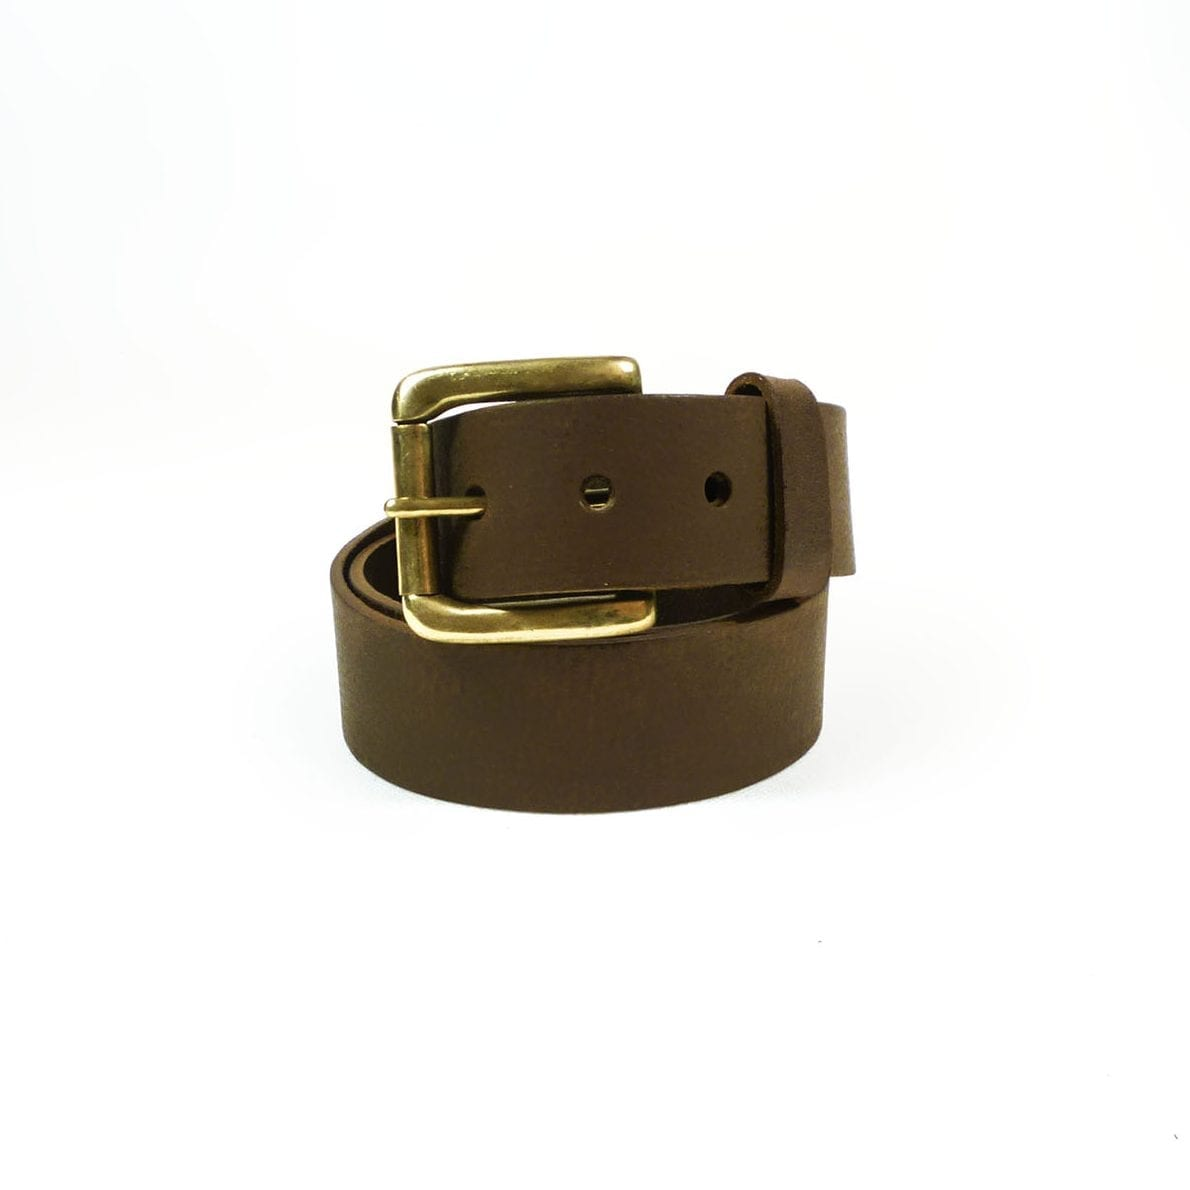 Belt - Brown Leather, 4cm wide, Brass Buckle, Rolled